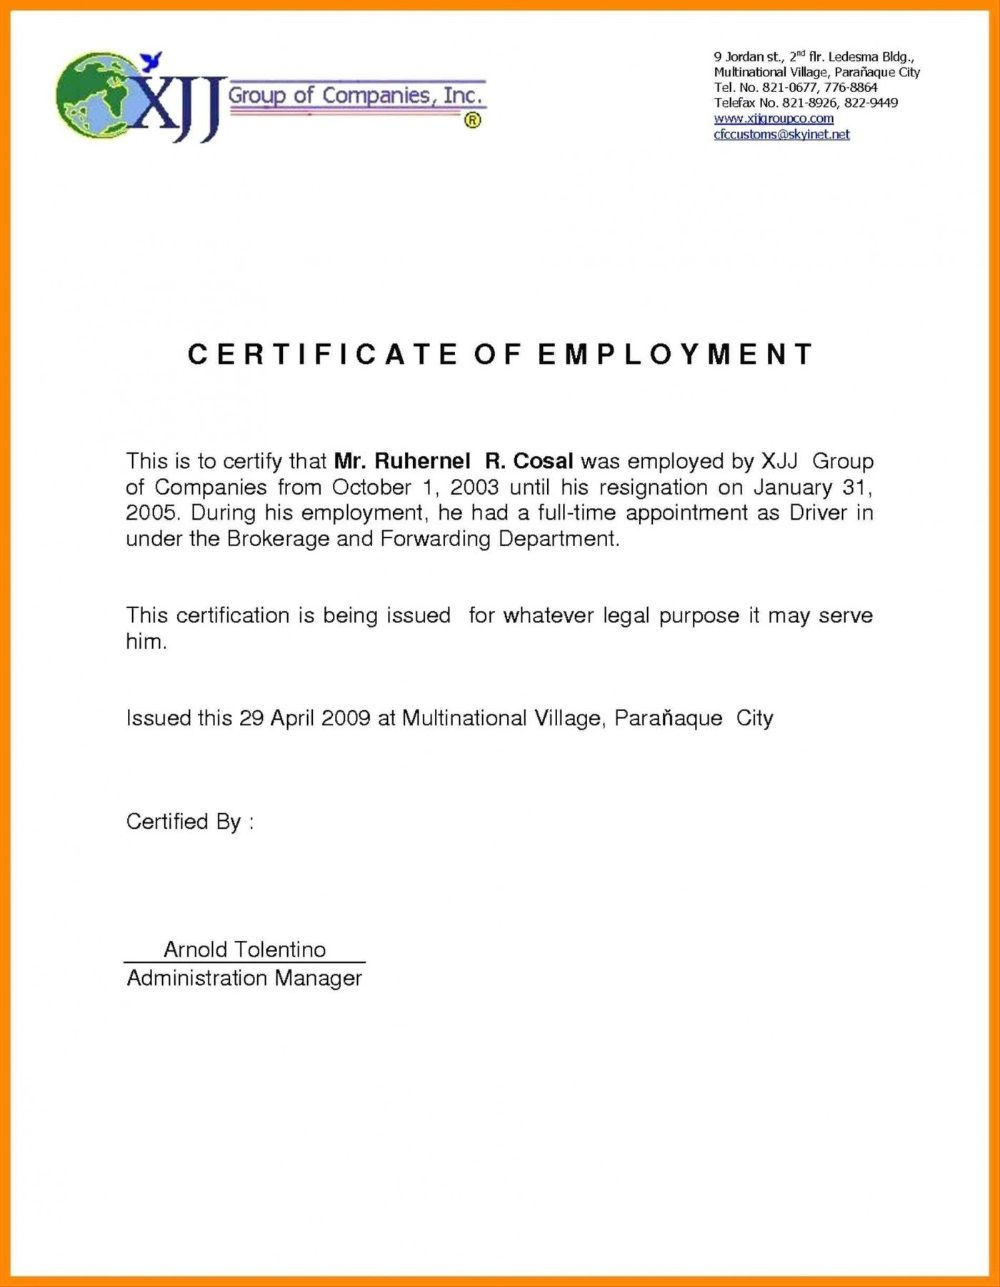 002 Wonderful Certificate Of Employment Template Design  Nz Sample Word Format FreeFull